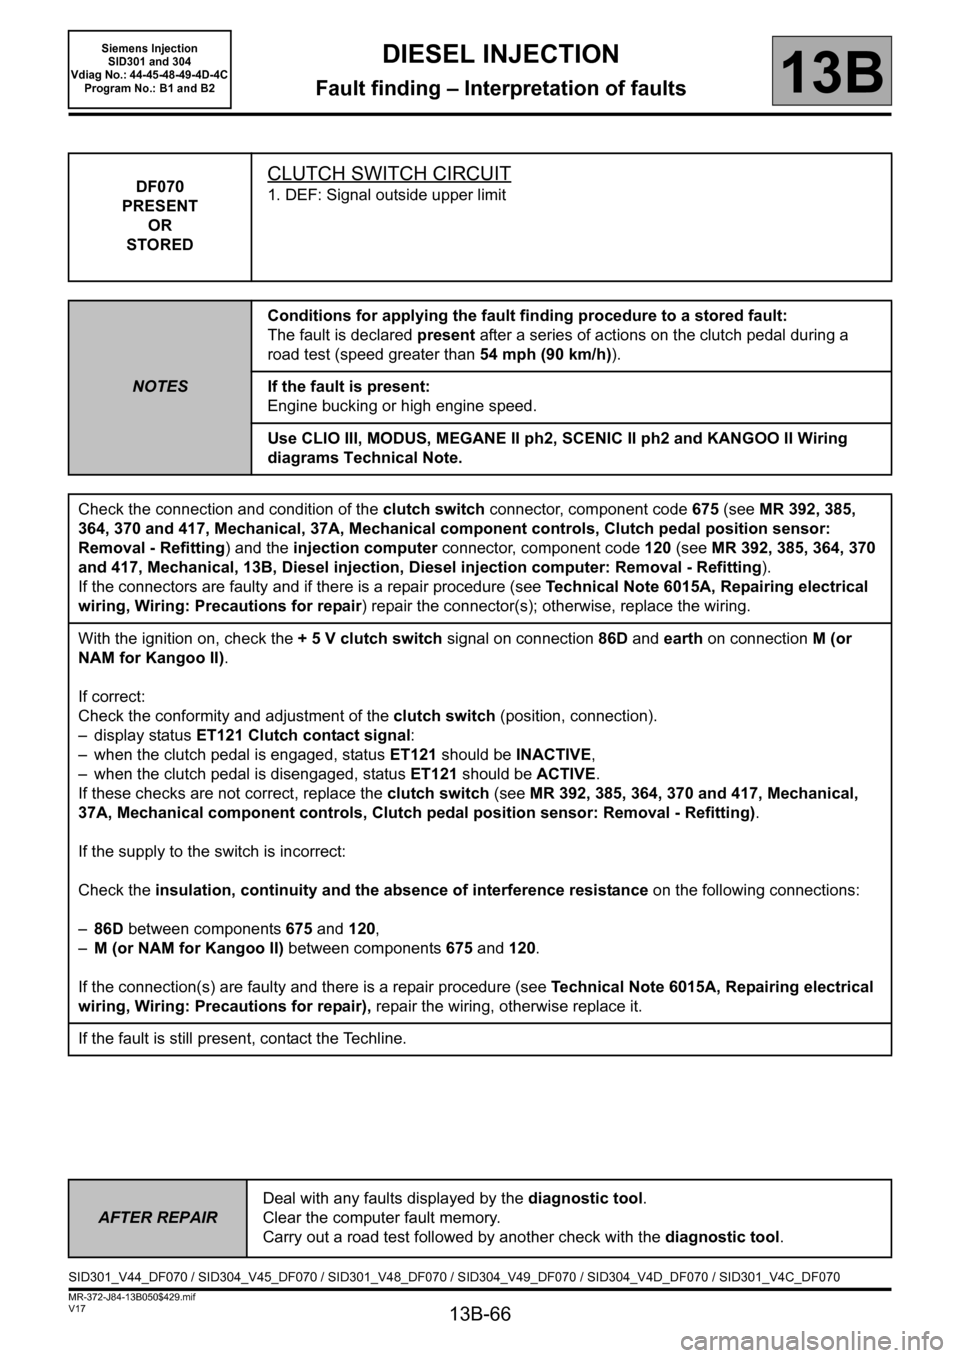 RENAULT SCENIC 2011 J95 / 3.G Engine And Peripherals Siemens Injection Workshop Manual, Page 66